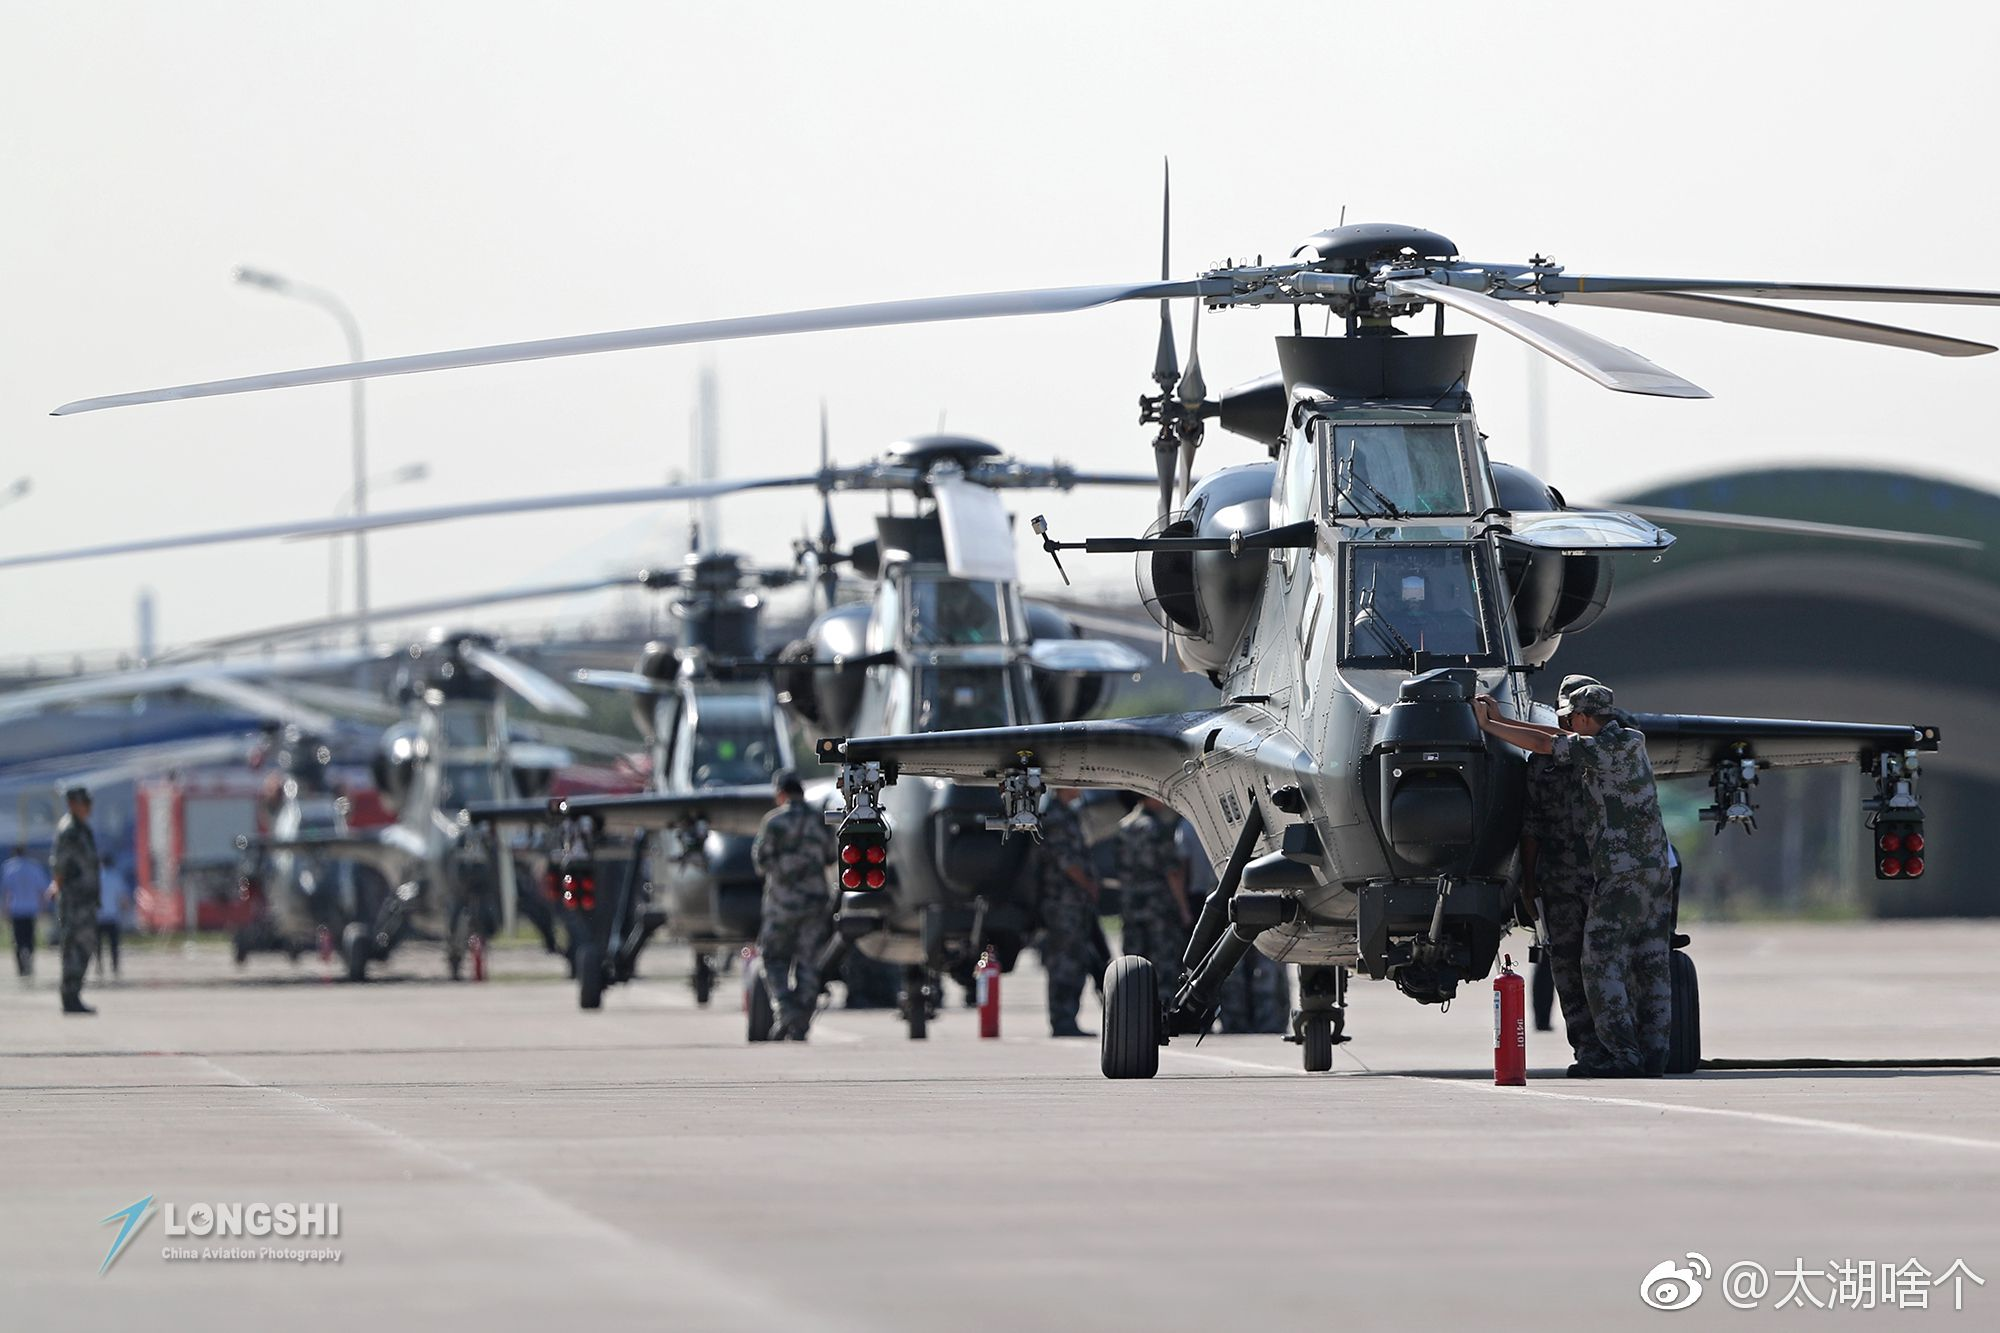 China's showing off its new helicopters | Popular Science